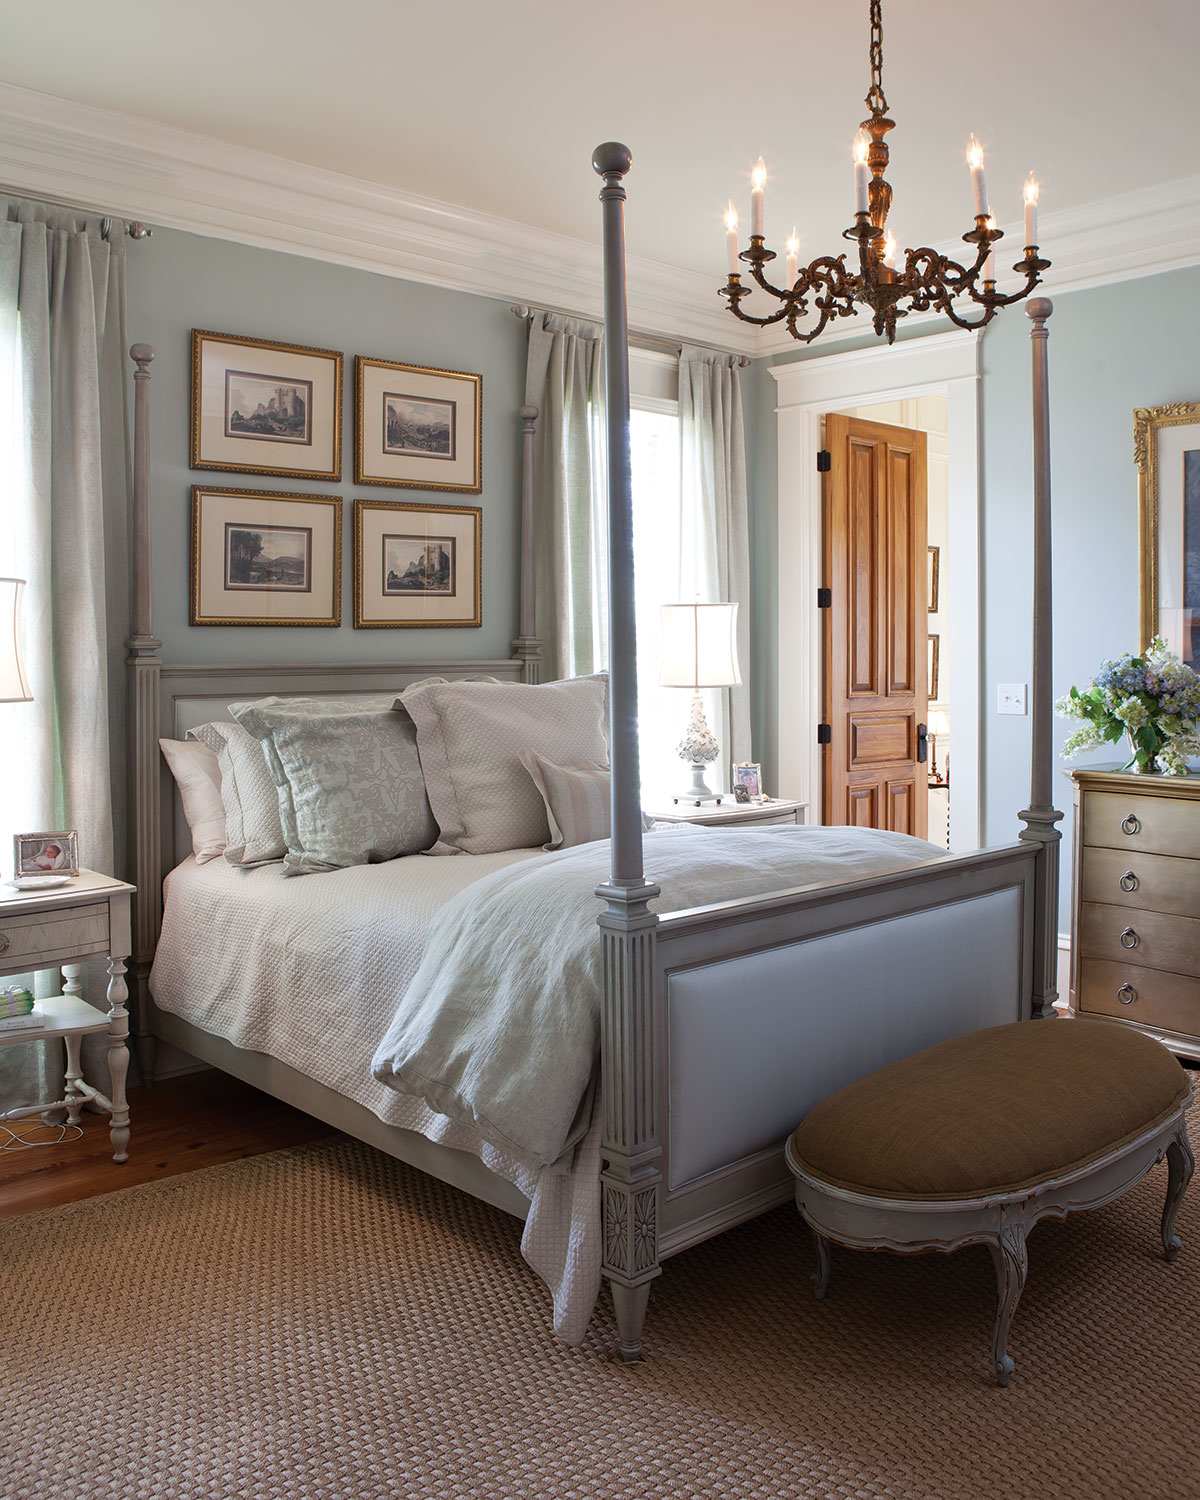 10 dreamy southern bedrooms page 3 of 10 southern lady for Bedroom room decor